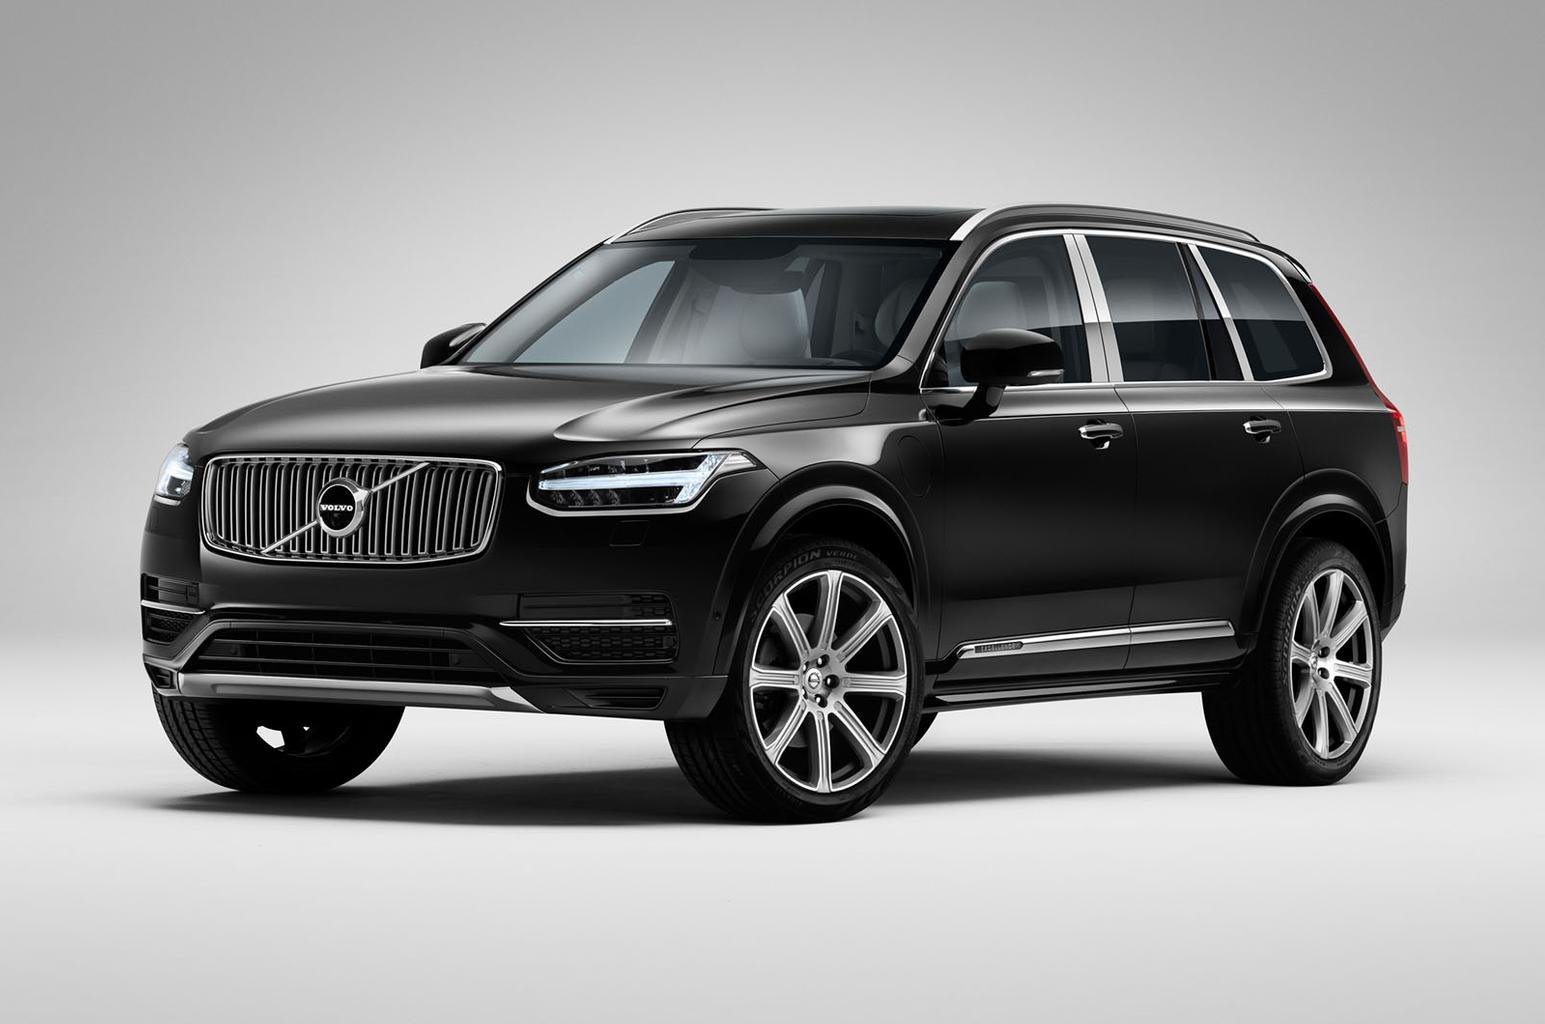 2015 Volvo XC90 - full info, pics, engines, price, on sale date, review